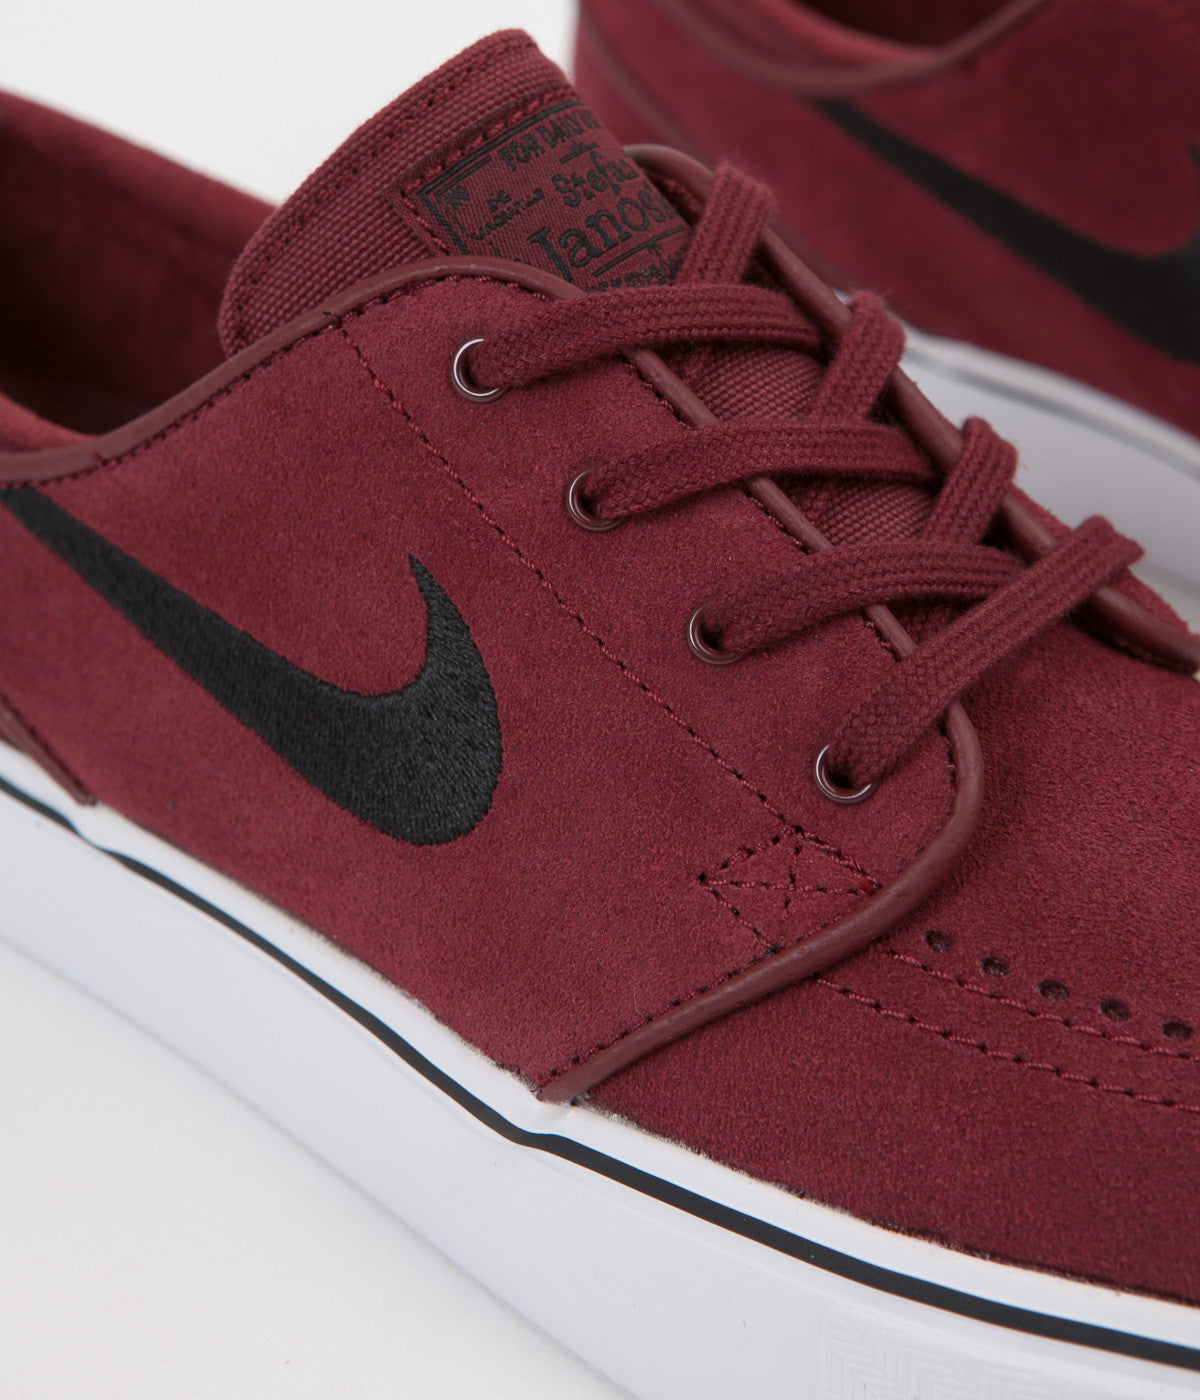 cdf9bd53cc63 ... Nike SB Stefan Janoski Shoes - Dark Team Red   Black ...